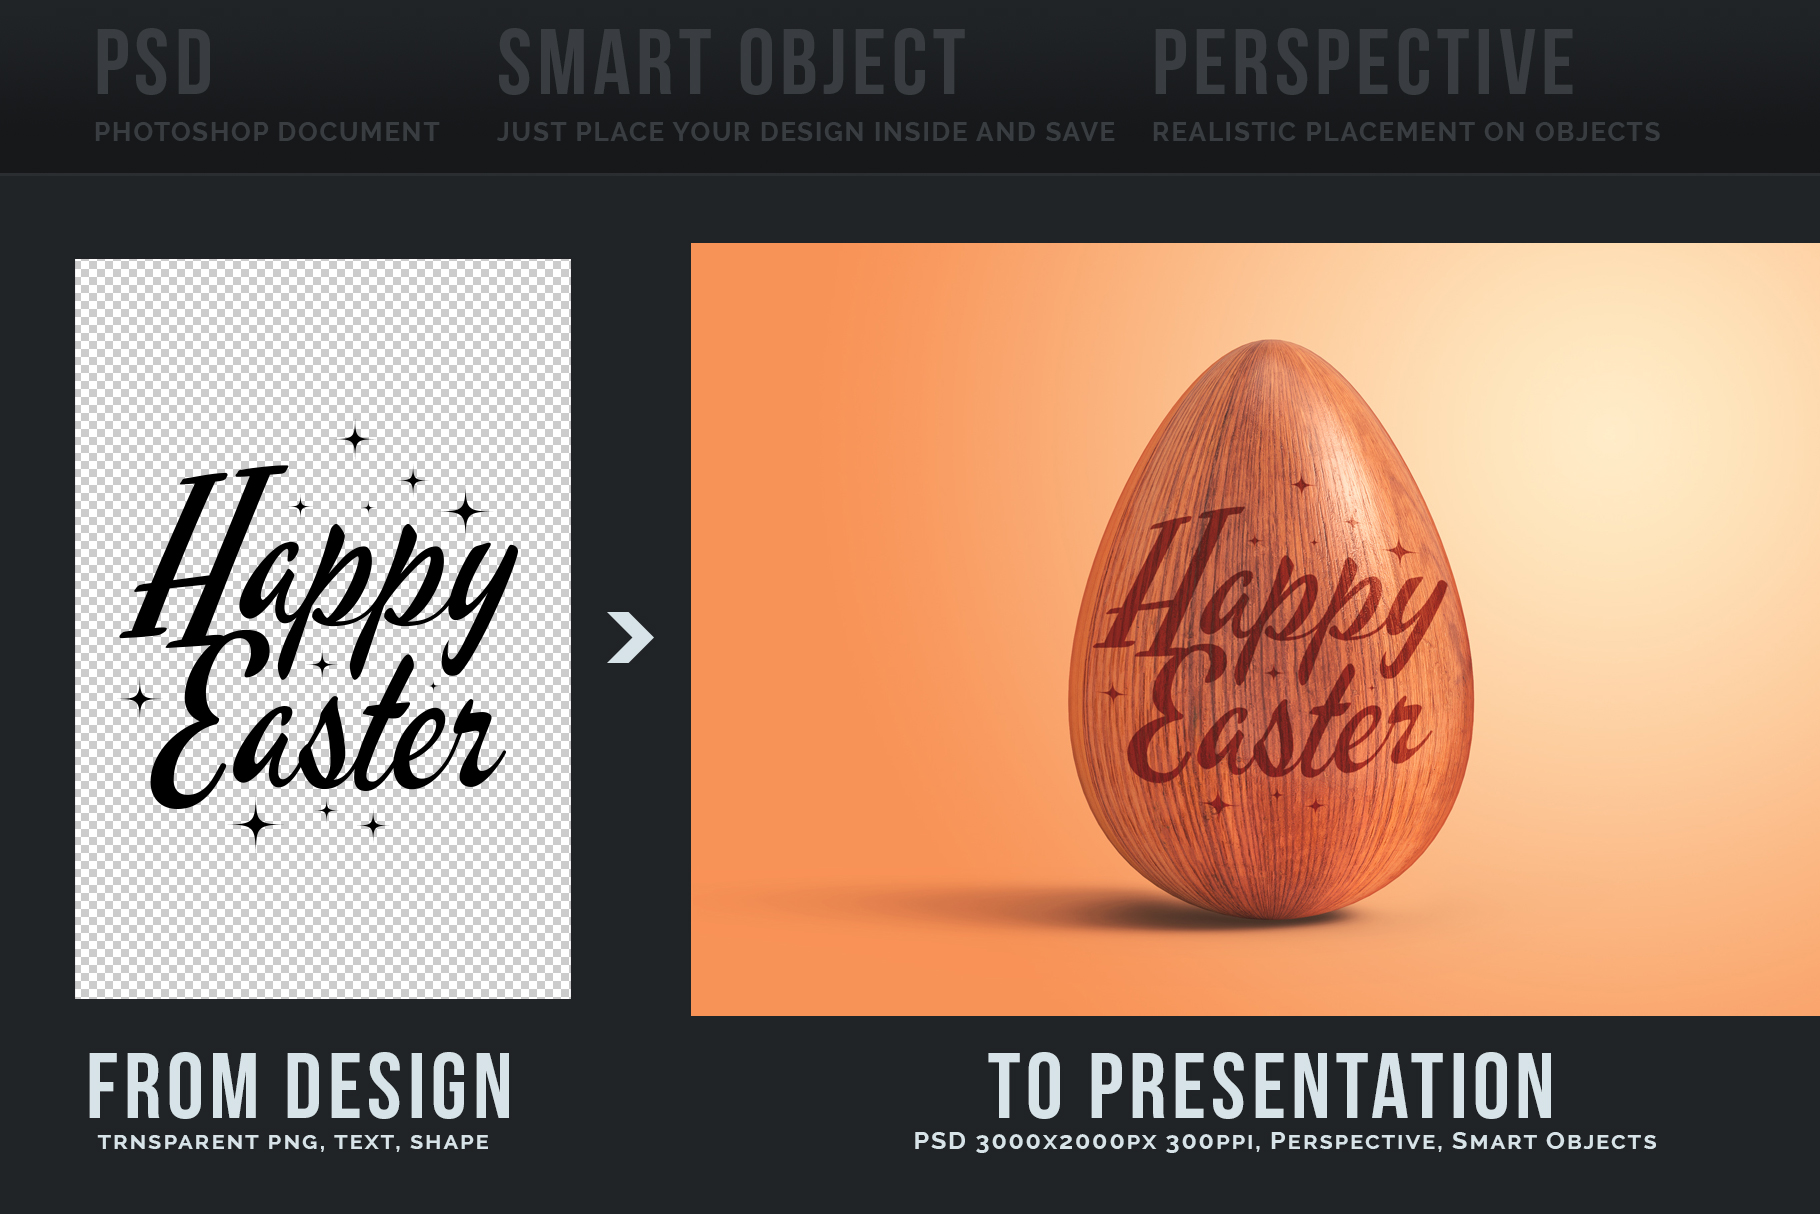 Easter Egg Mockups and Images example image 4